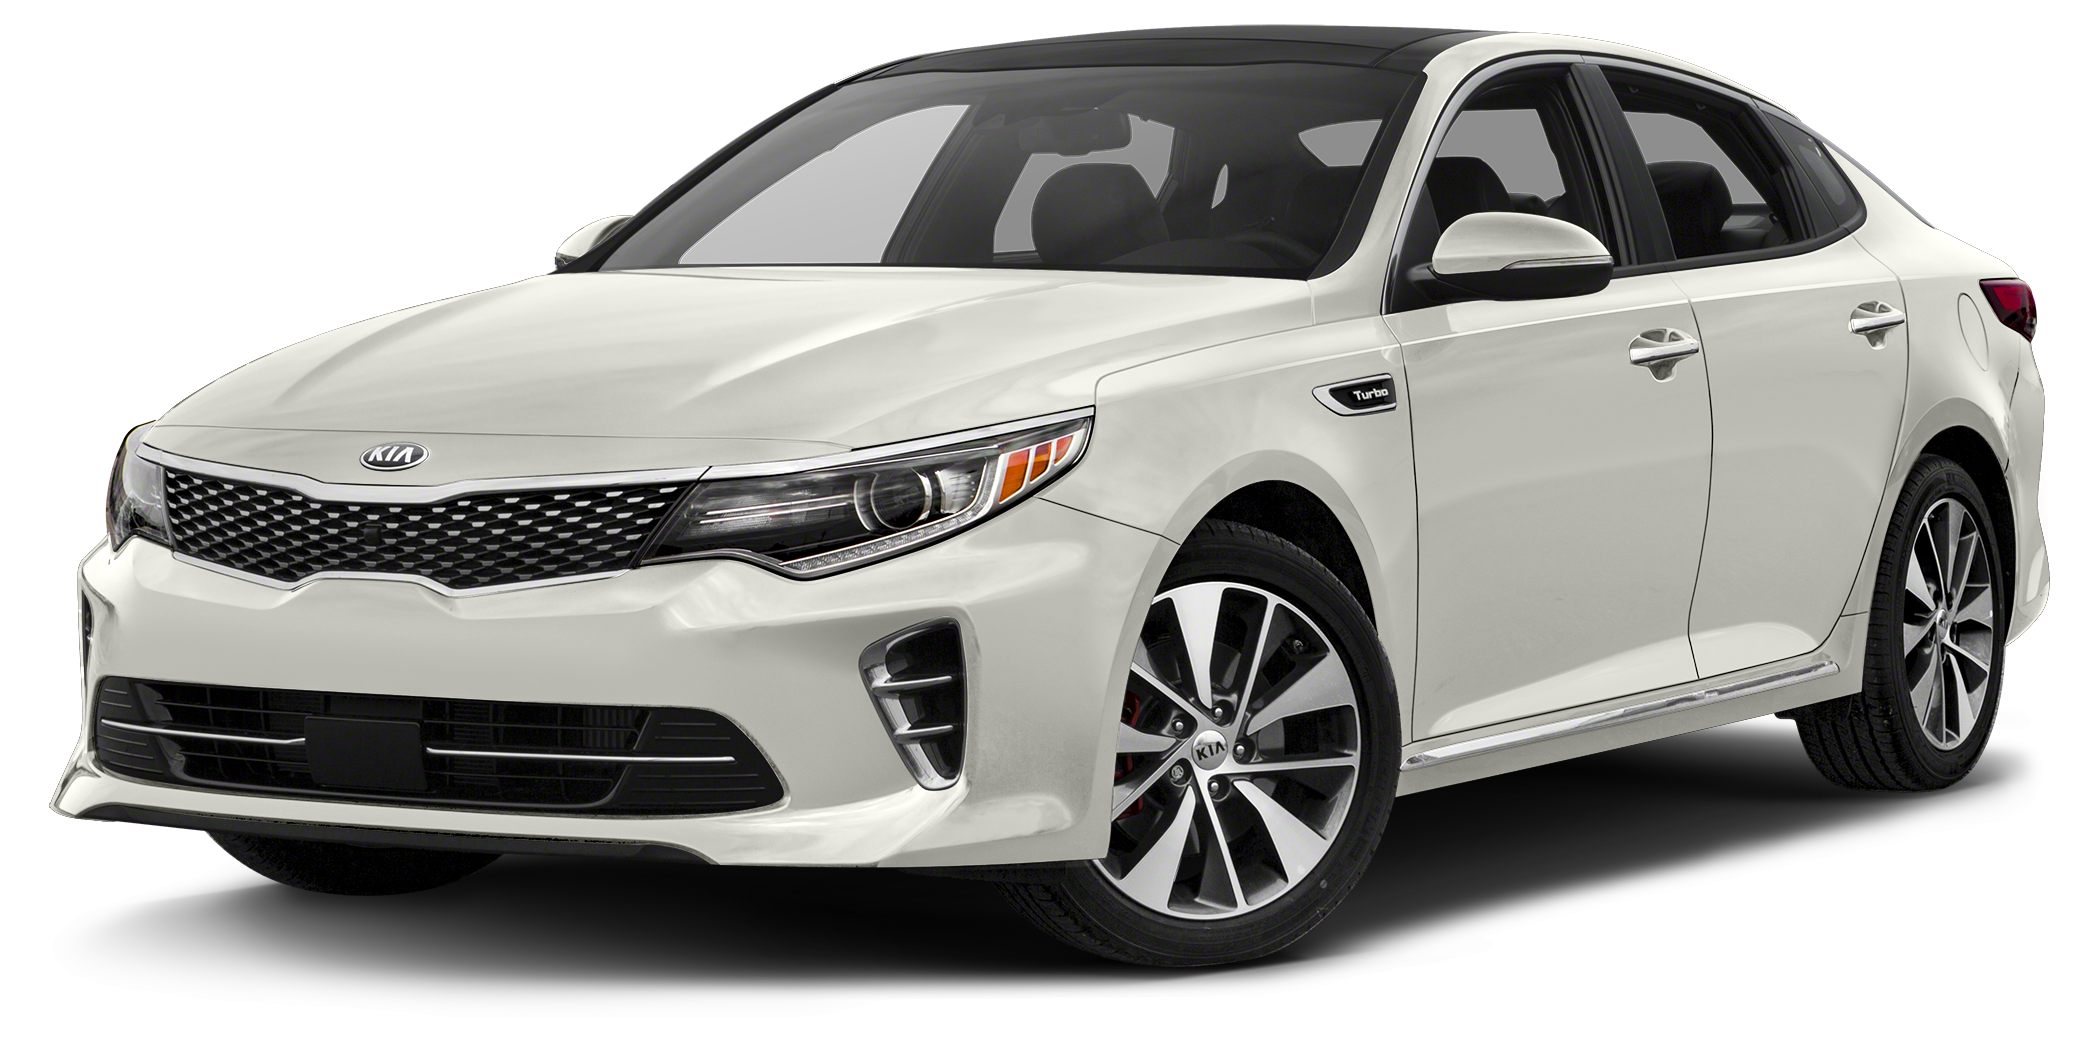 2018 Kia Optima SX Turbo Miles 9Color Snow White Pearl Stock SB17771 VIN 5XXGW4L26JG232362